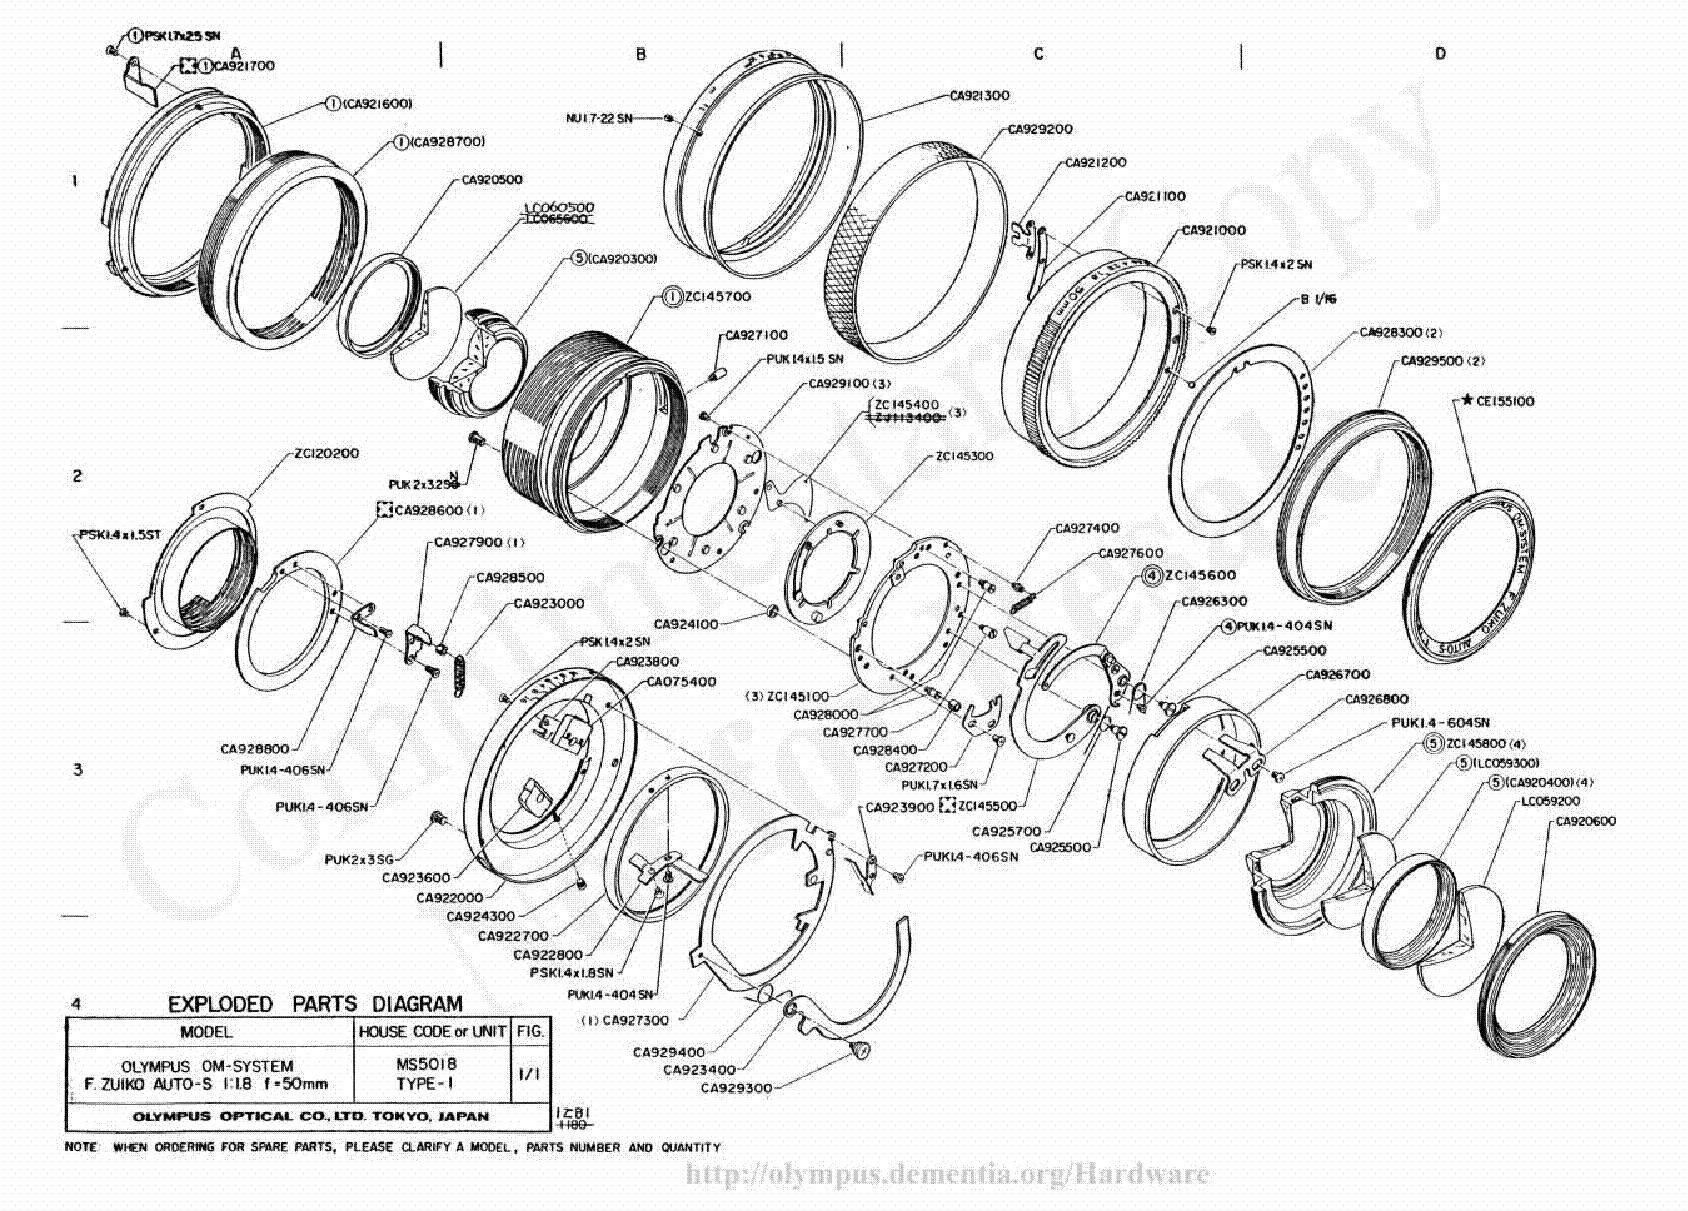 OLYMPUS 50MM F1.8 EXPLODED PARTS DIAGRAM service manual (1st page)